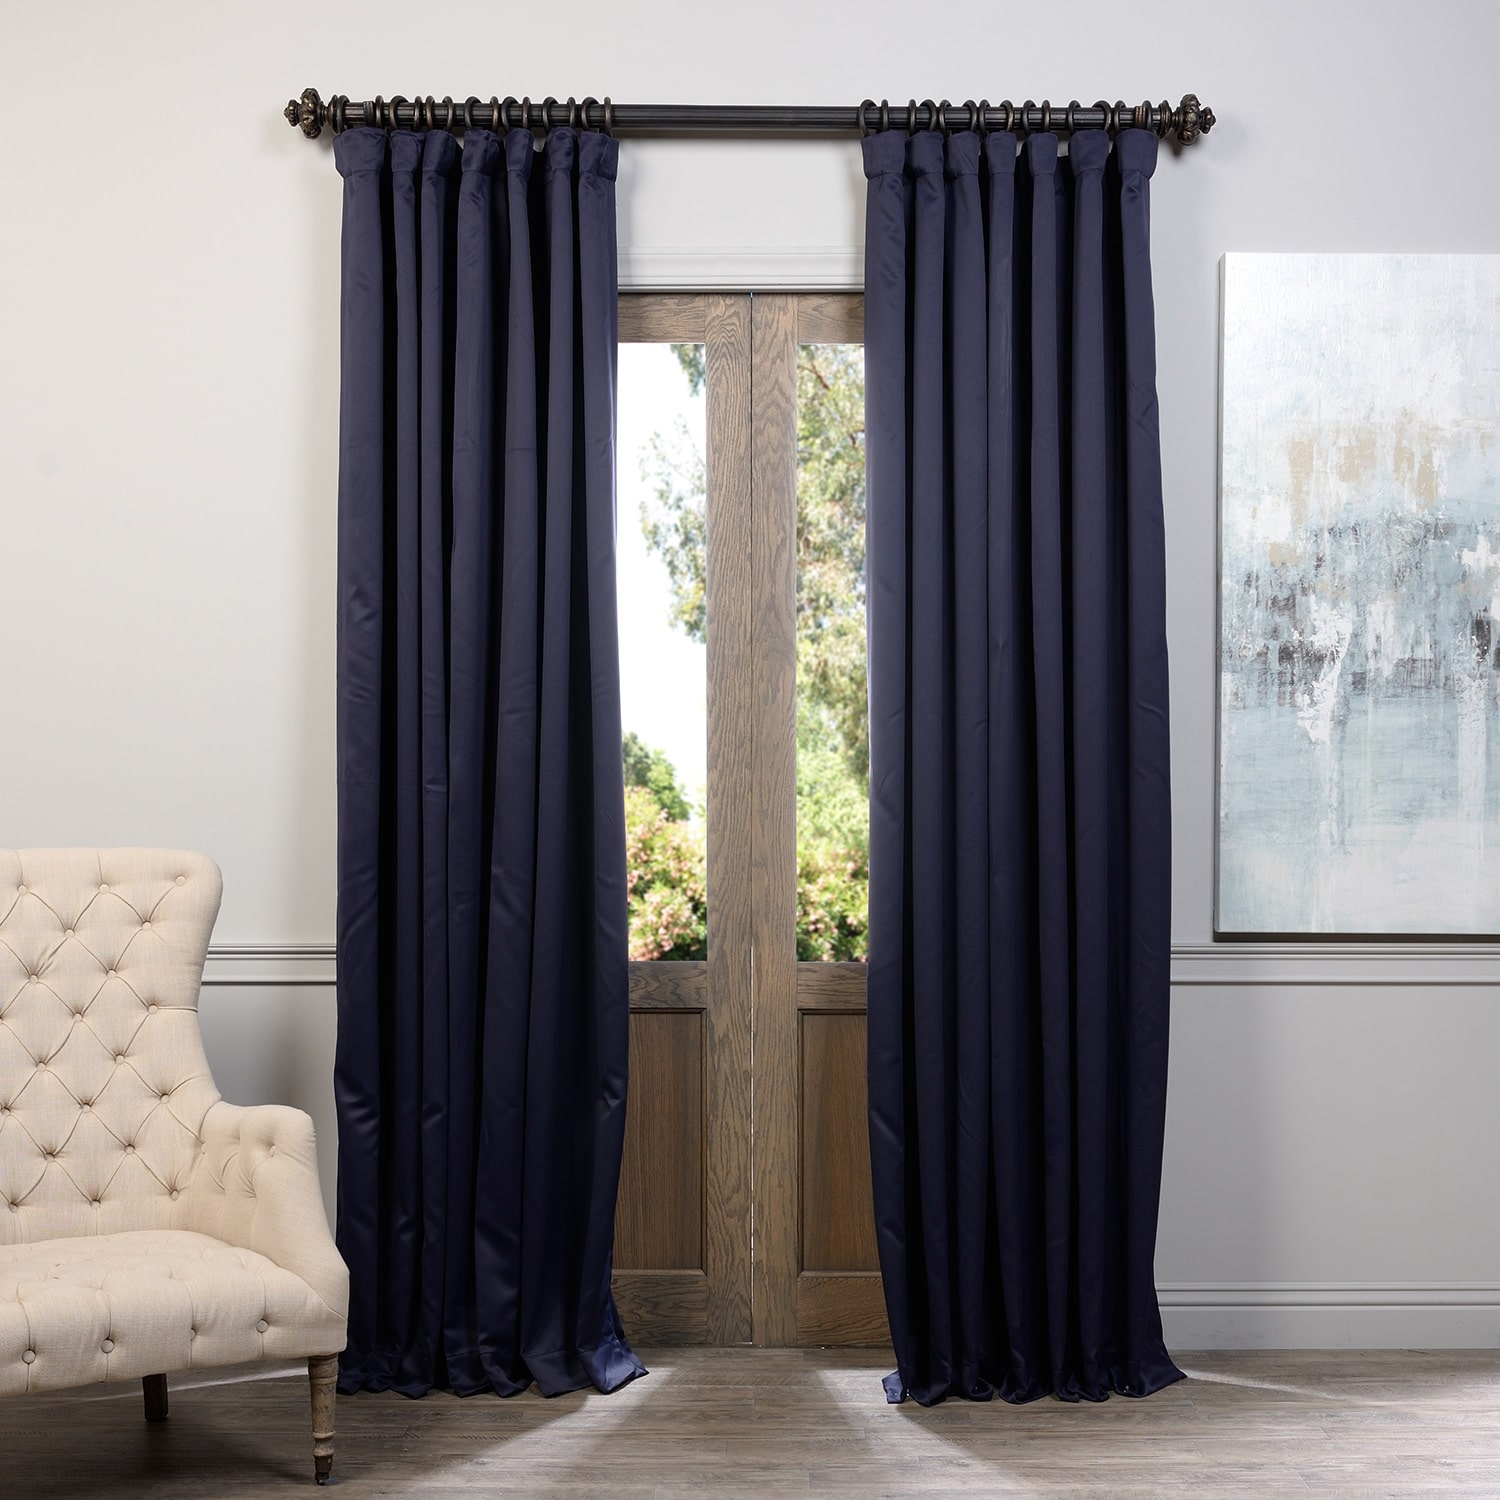 Lofty Inspiration Blackout Curtains 108 Inches Blackout Curtains In Extra Long Thermal Curtains (View 5 of 15)